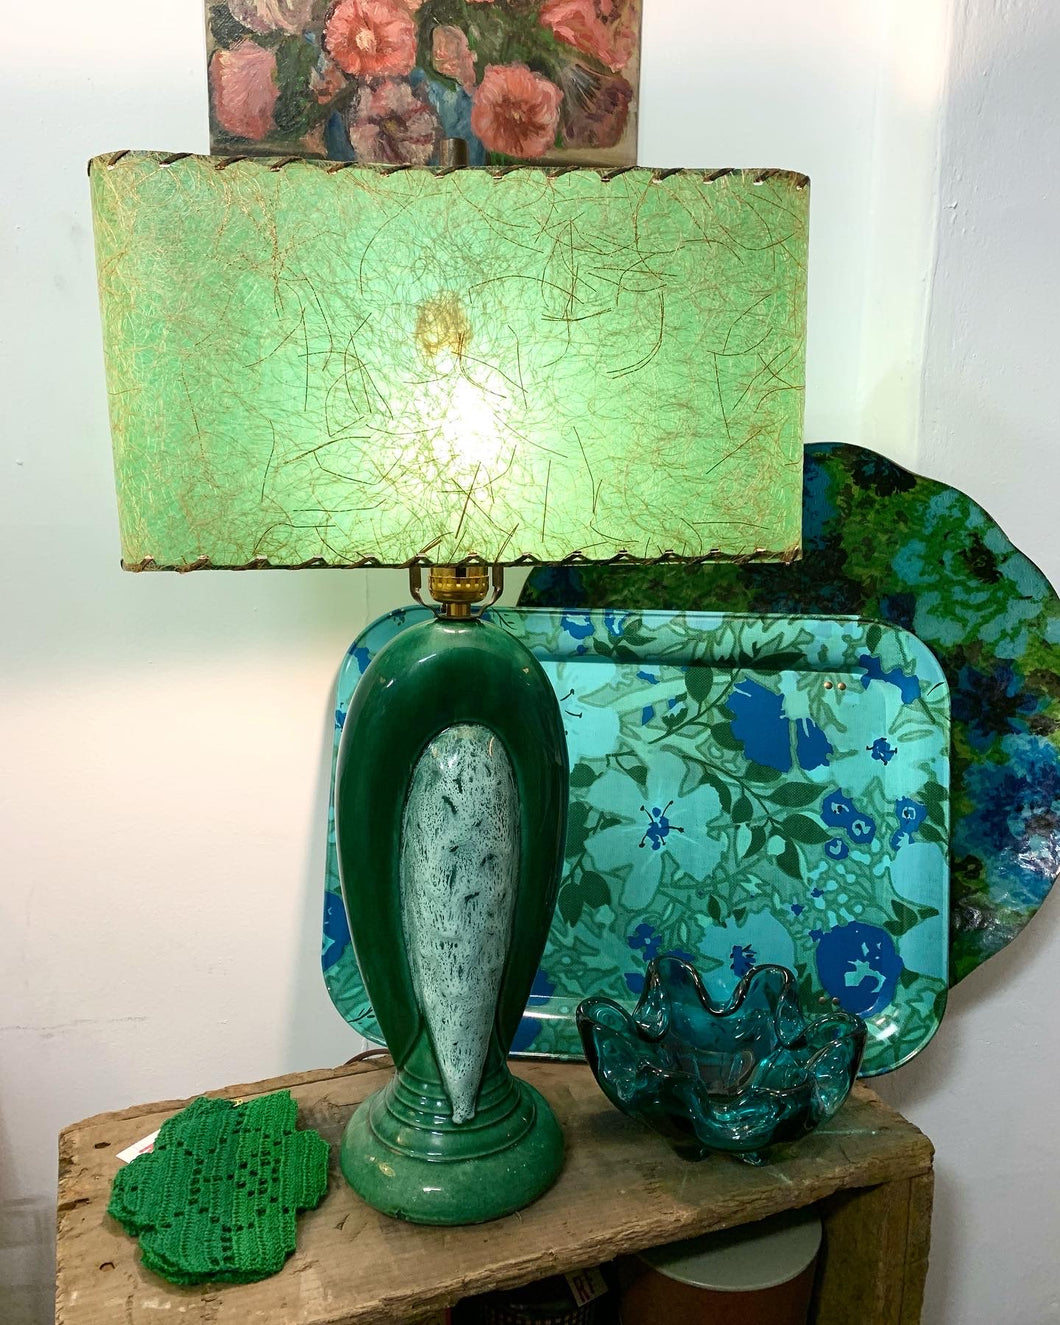 Vintage Green Table Lamp with Fiberglass Shade